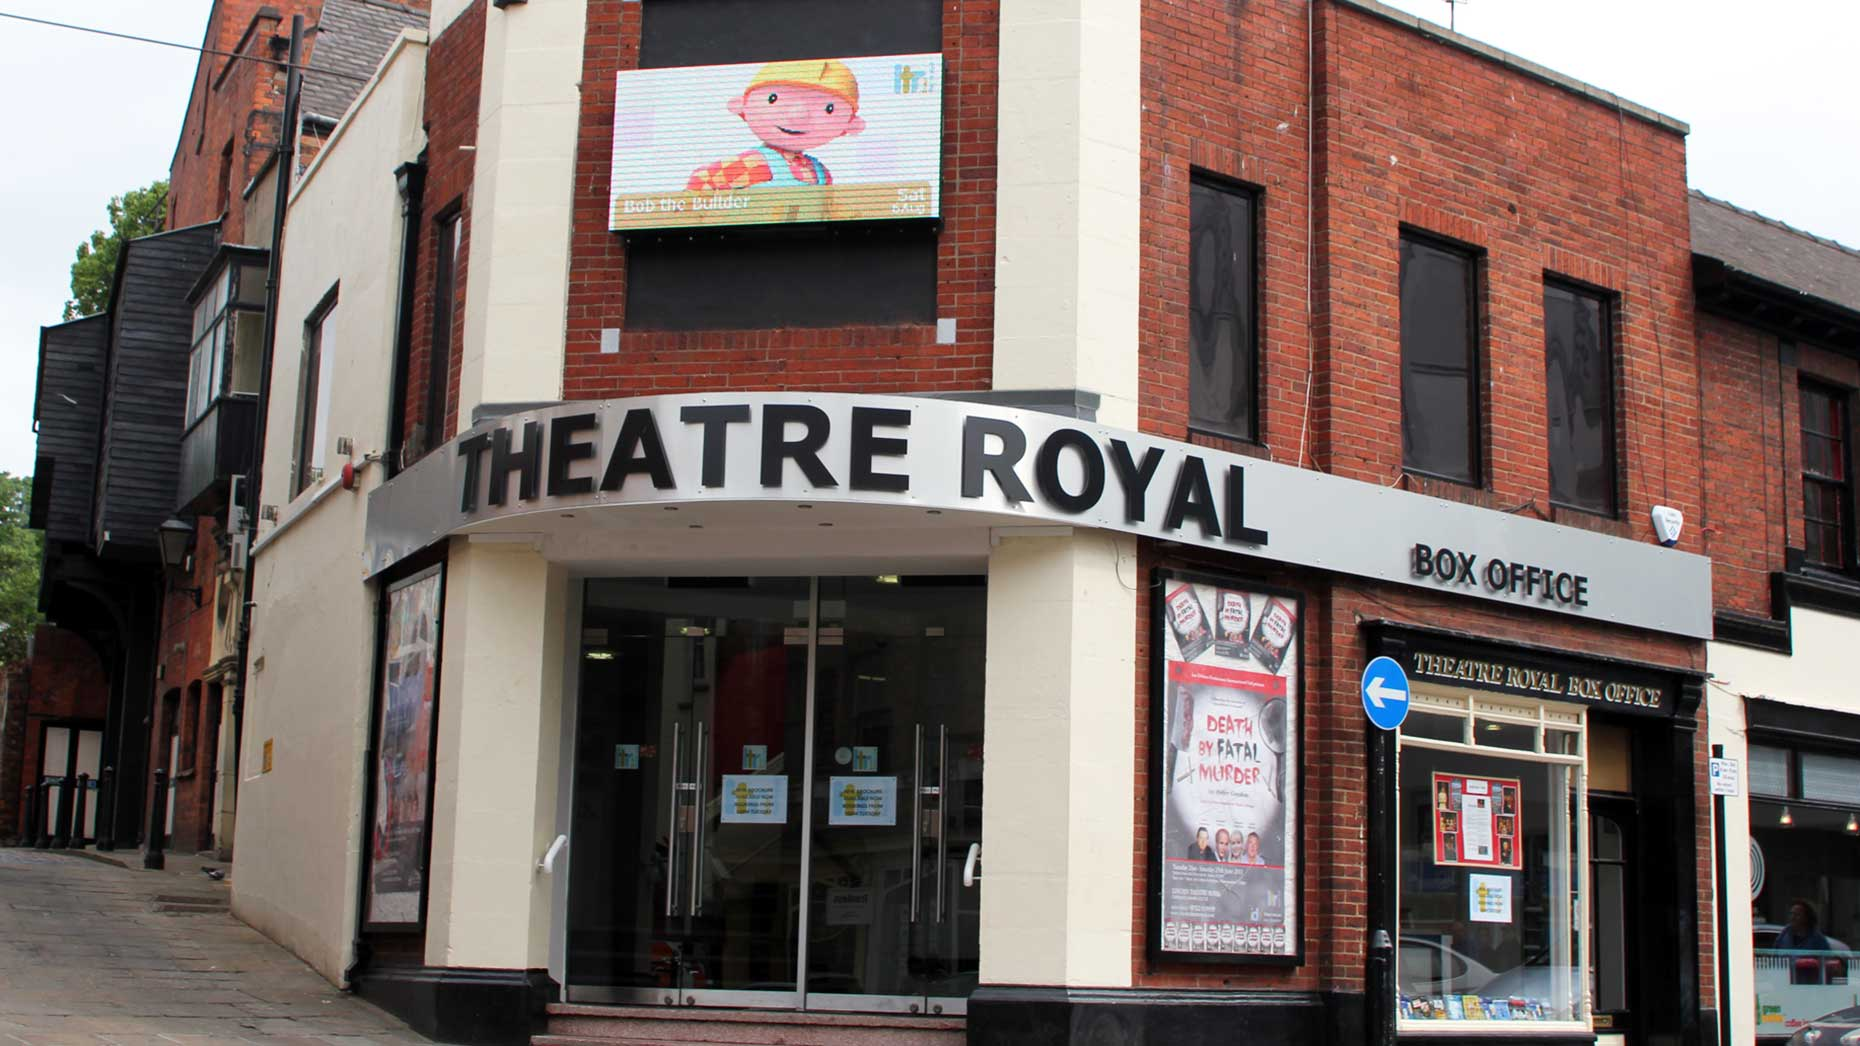 Lead flashing stolen from Lincoln Theatre Royal roof